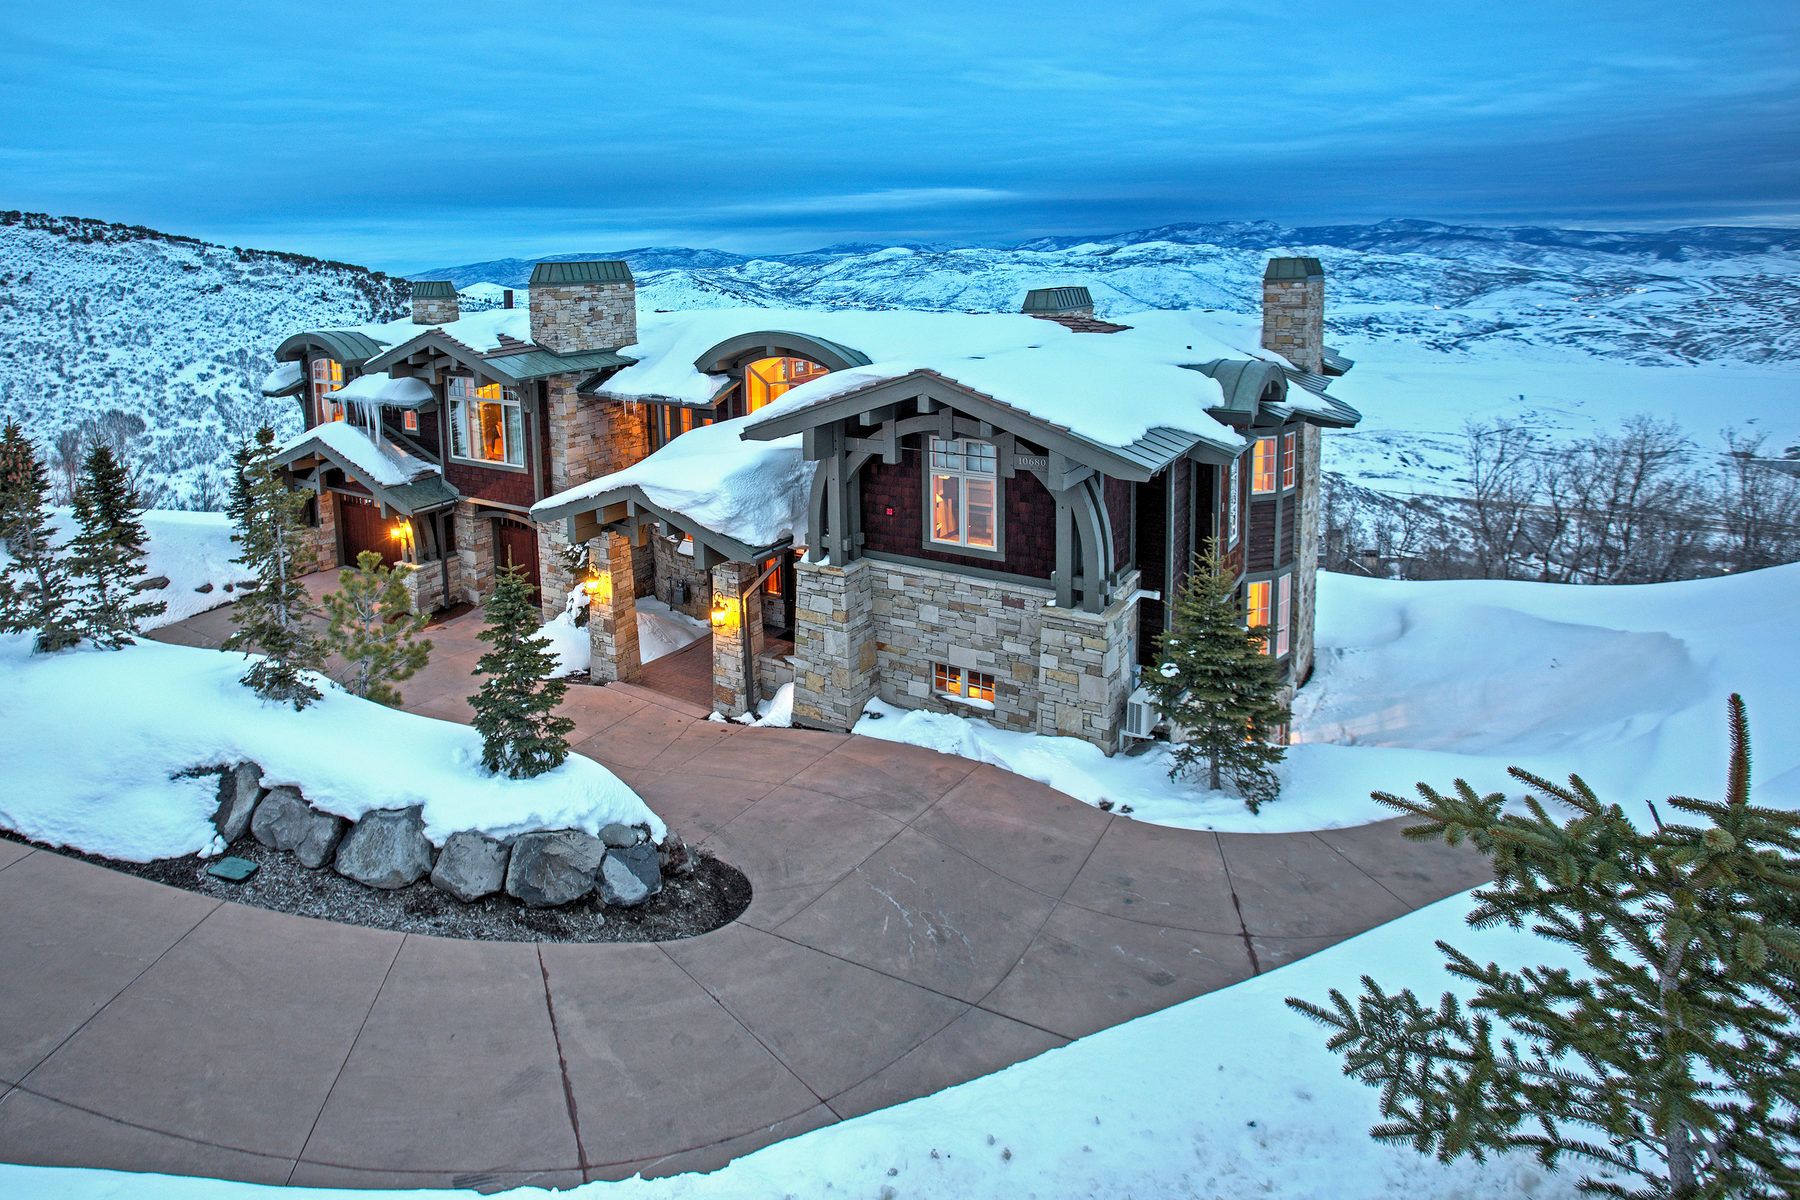 Casa para uma família para Venda às Direct ski in / ski out Deer Valley Mountain Residence 10680 N Summit View Park City, Utah, 84060 Estados Unidos